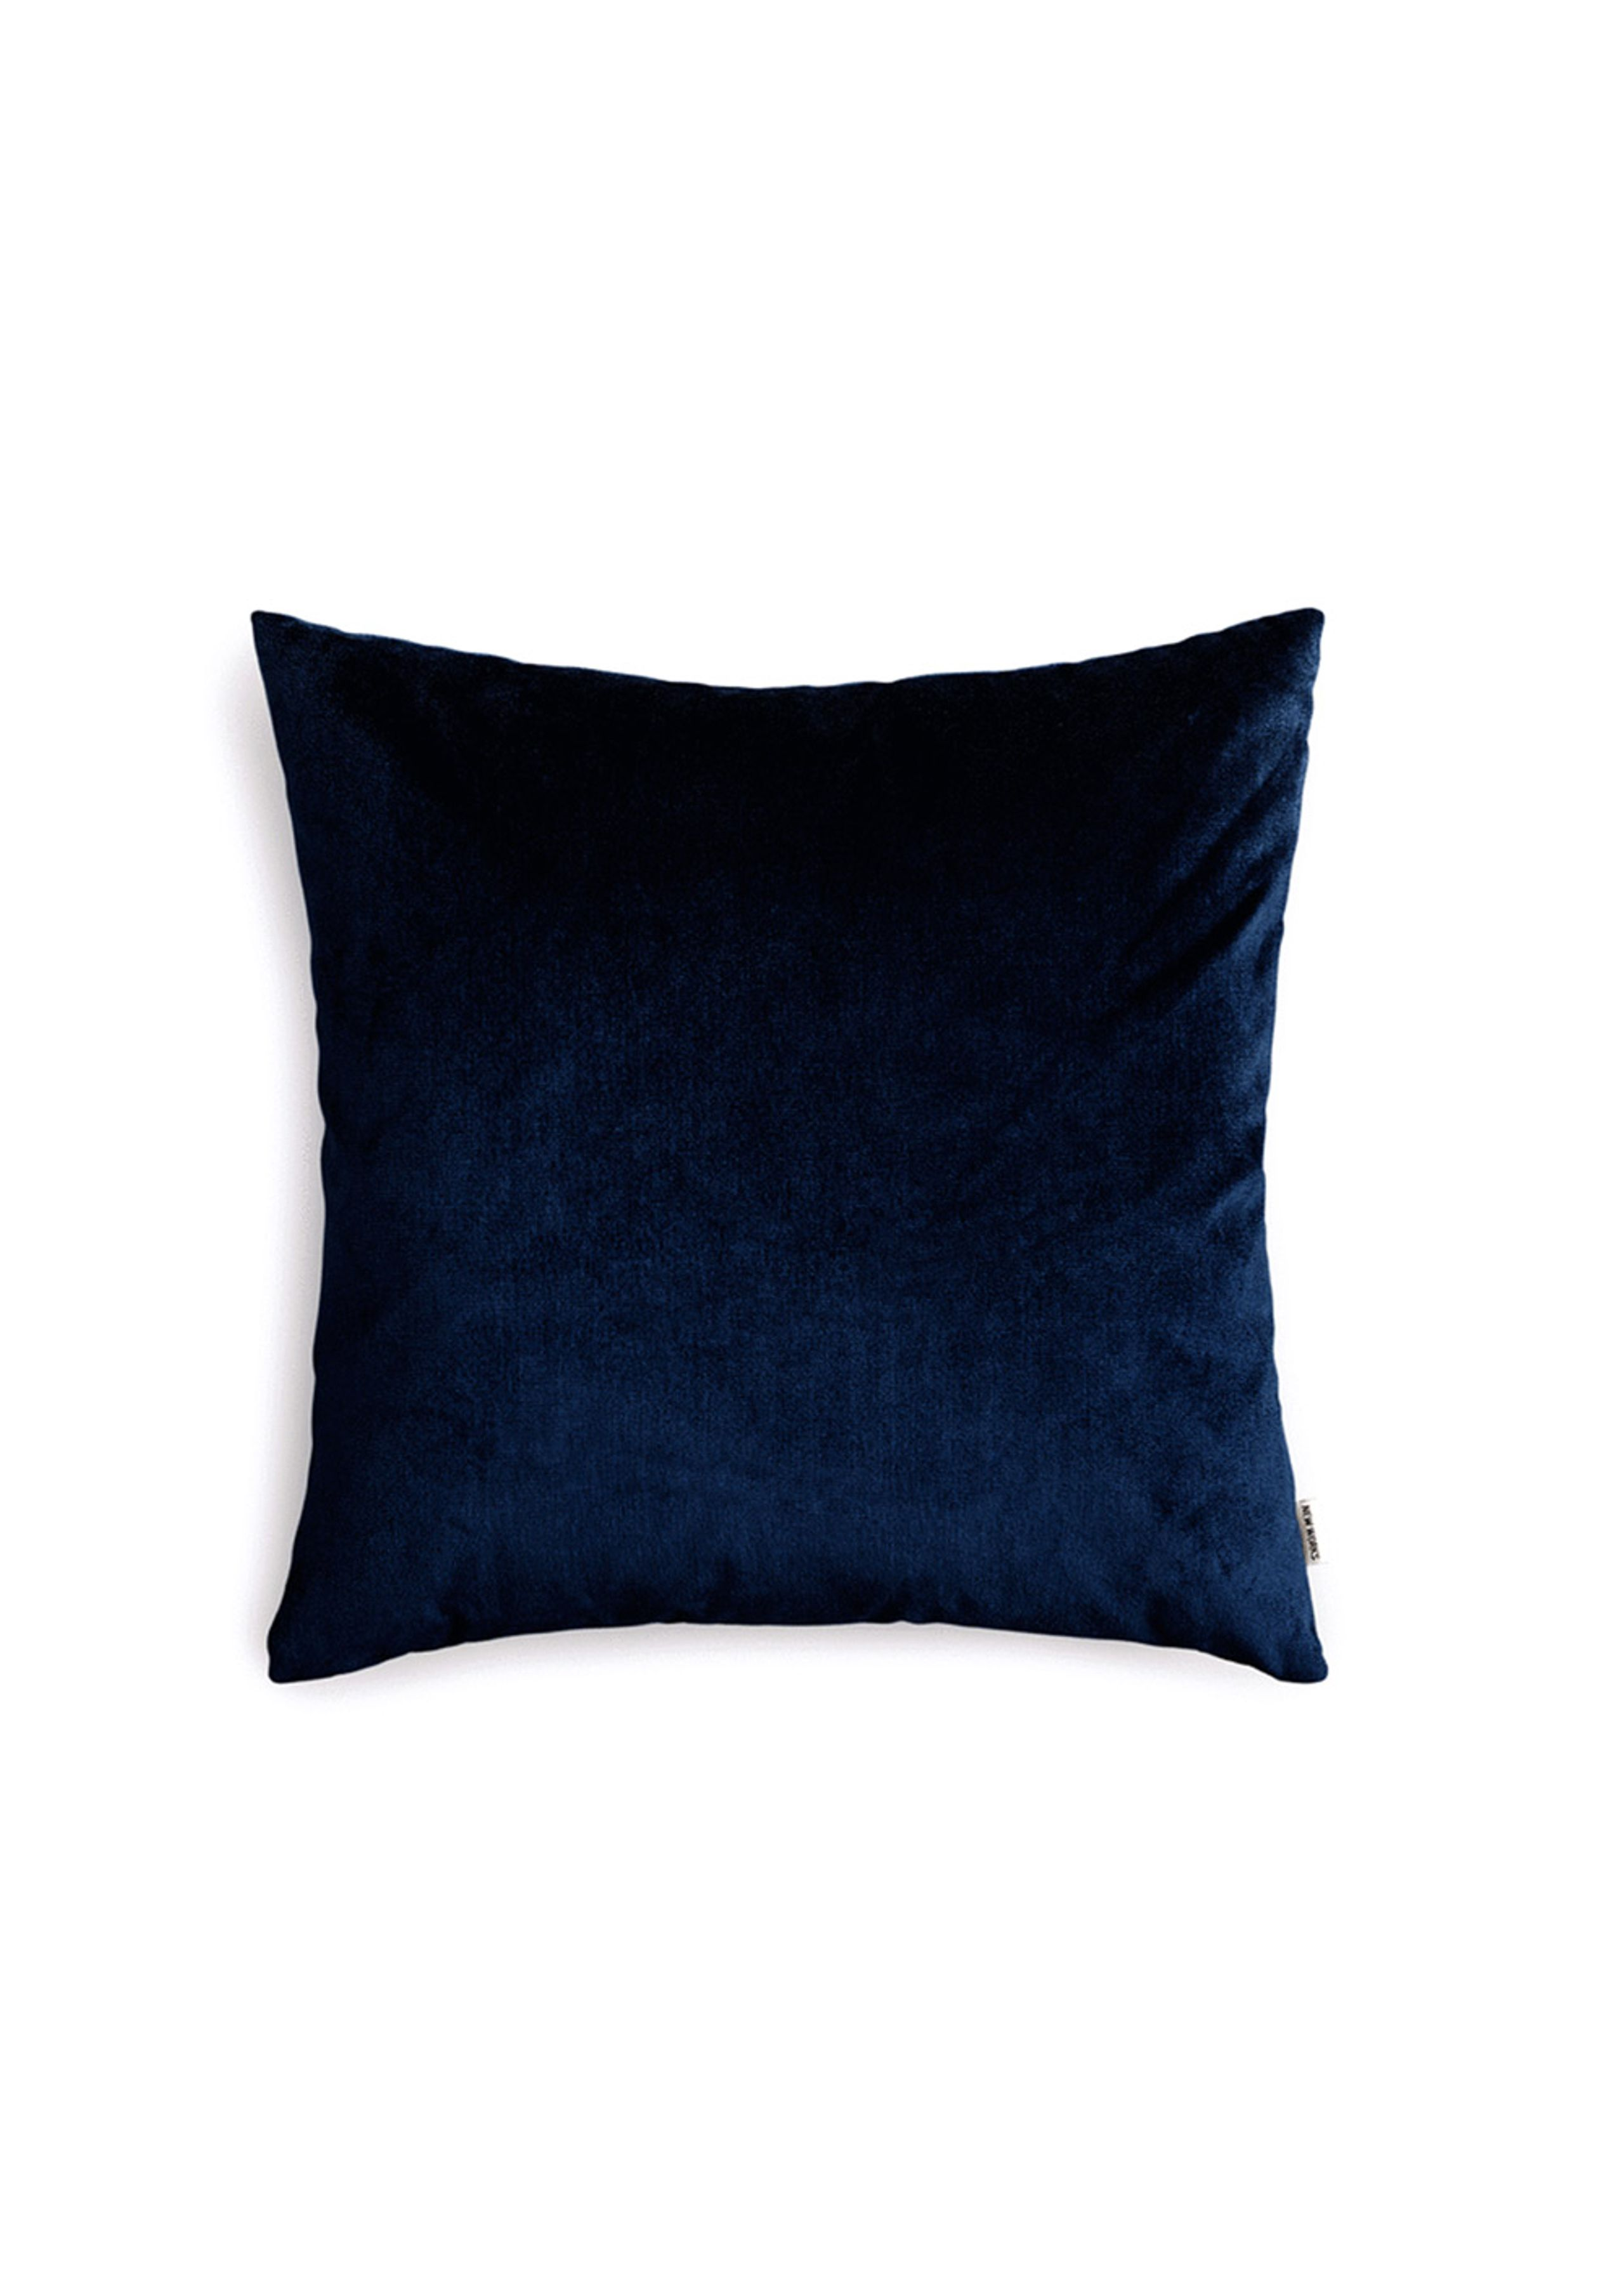 Velvet cushion - by malene birger